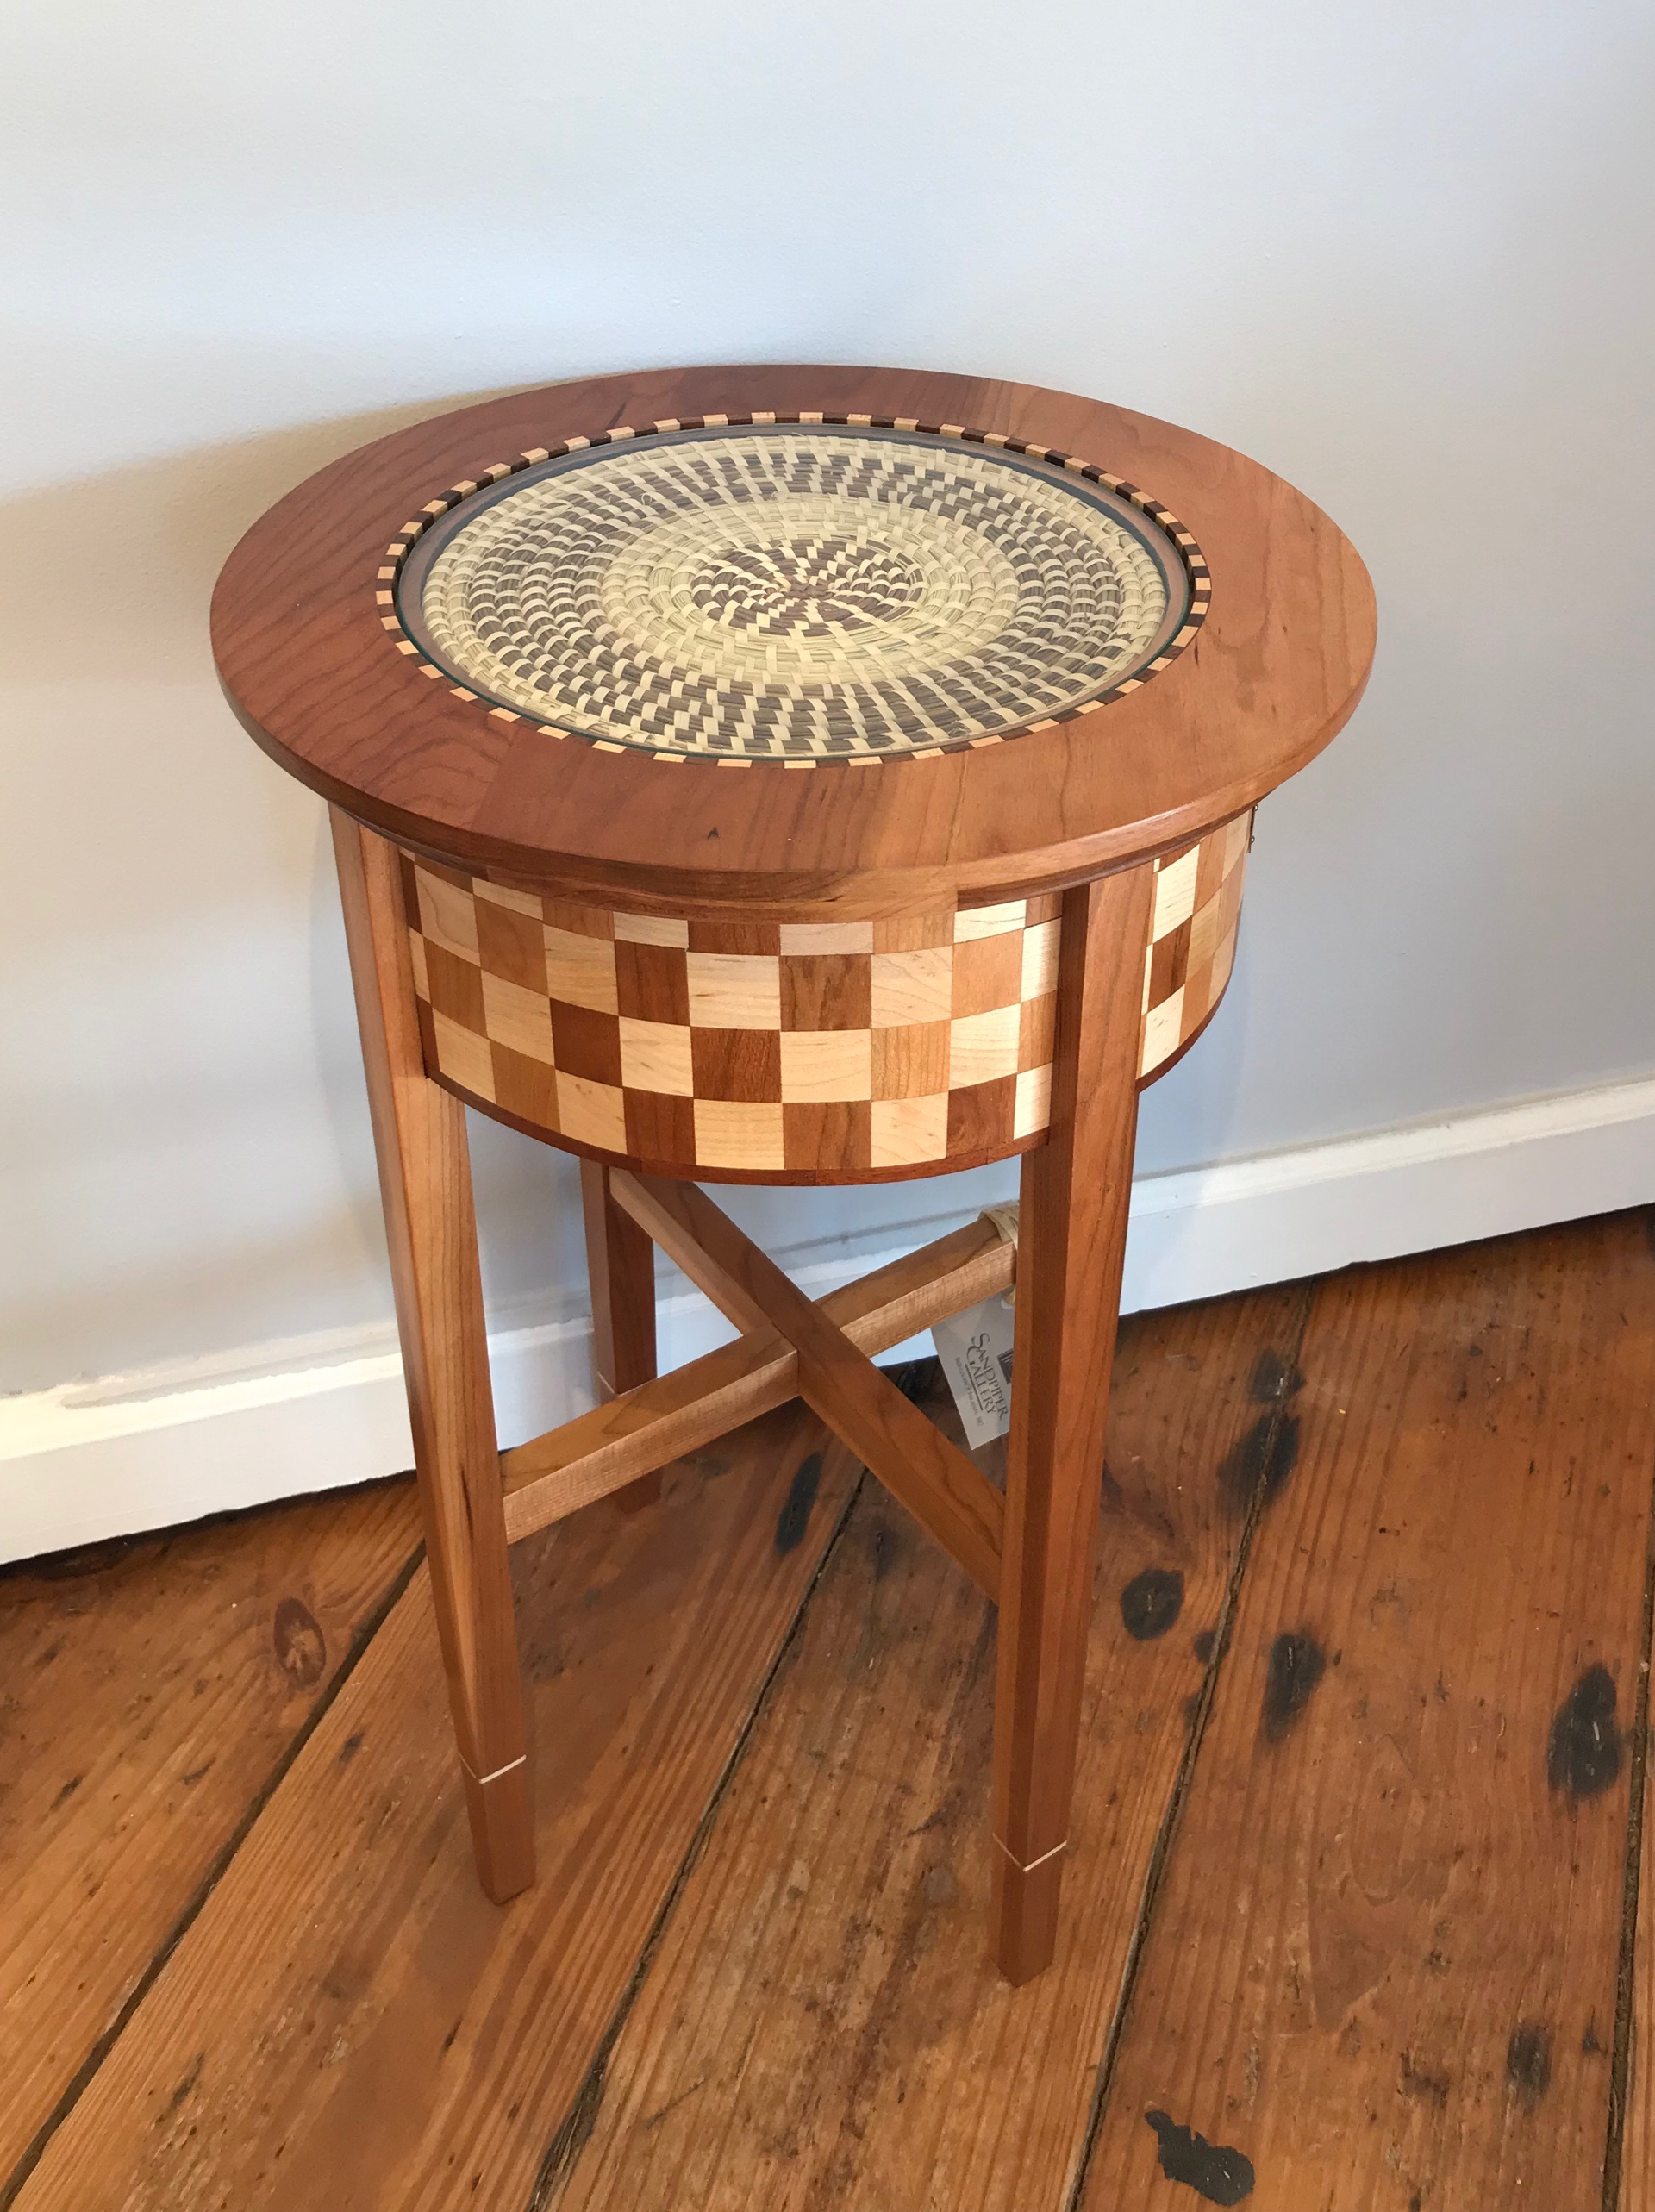 Sweet Grass Basket Table #34 by Pete Rock